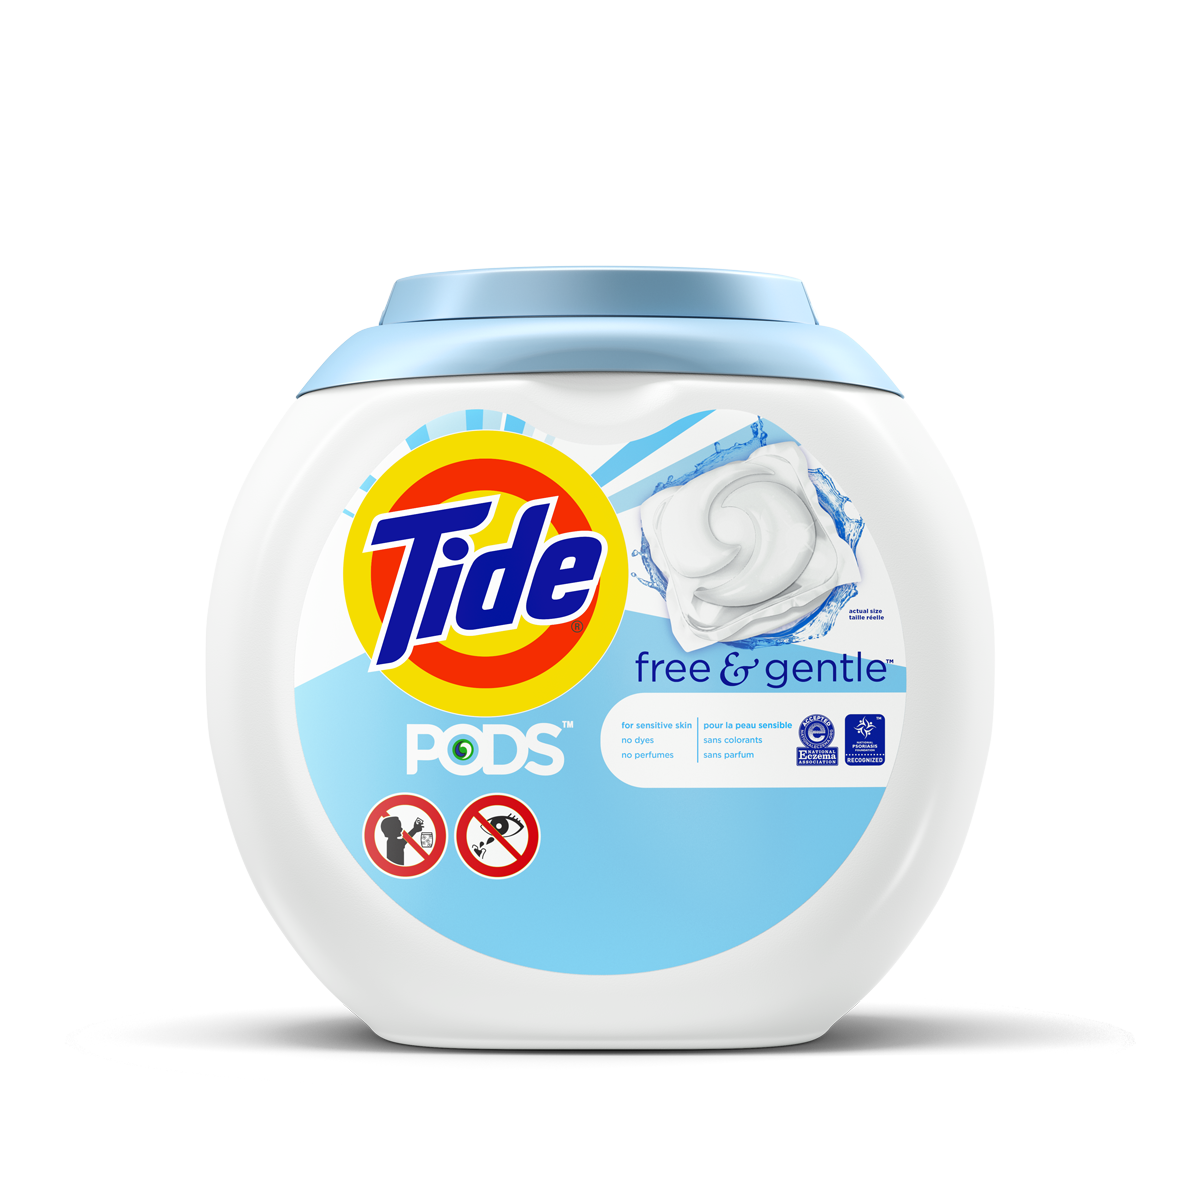 Tide PODS Free and Gentle Laundry Detergent comes in a circular, white, plastic tub, with a light blue label and cap.